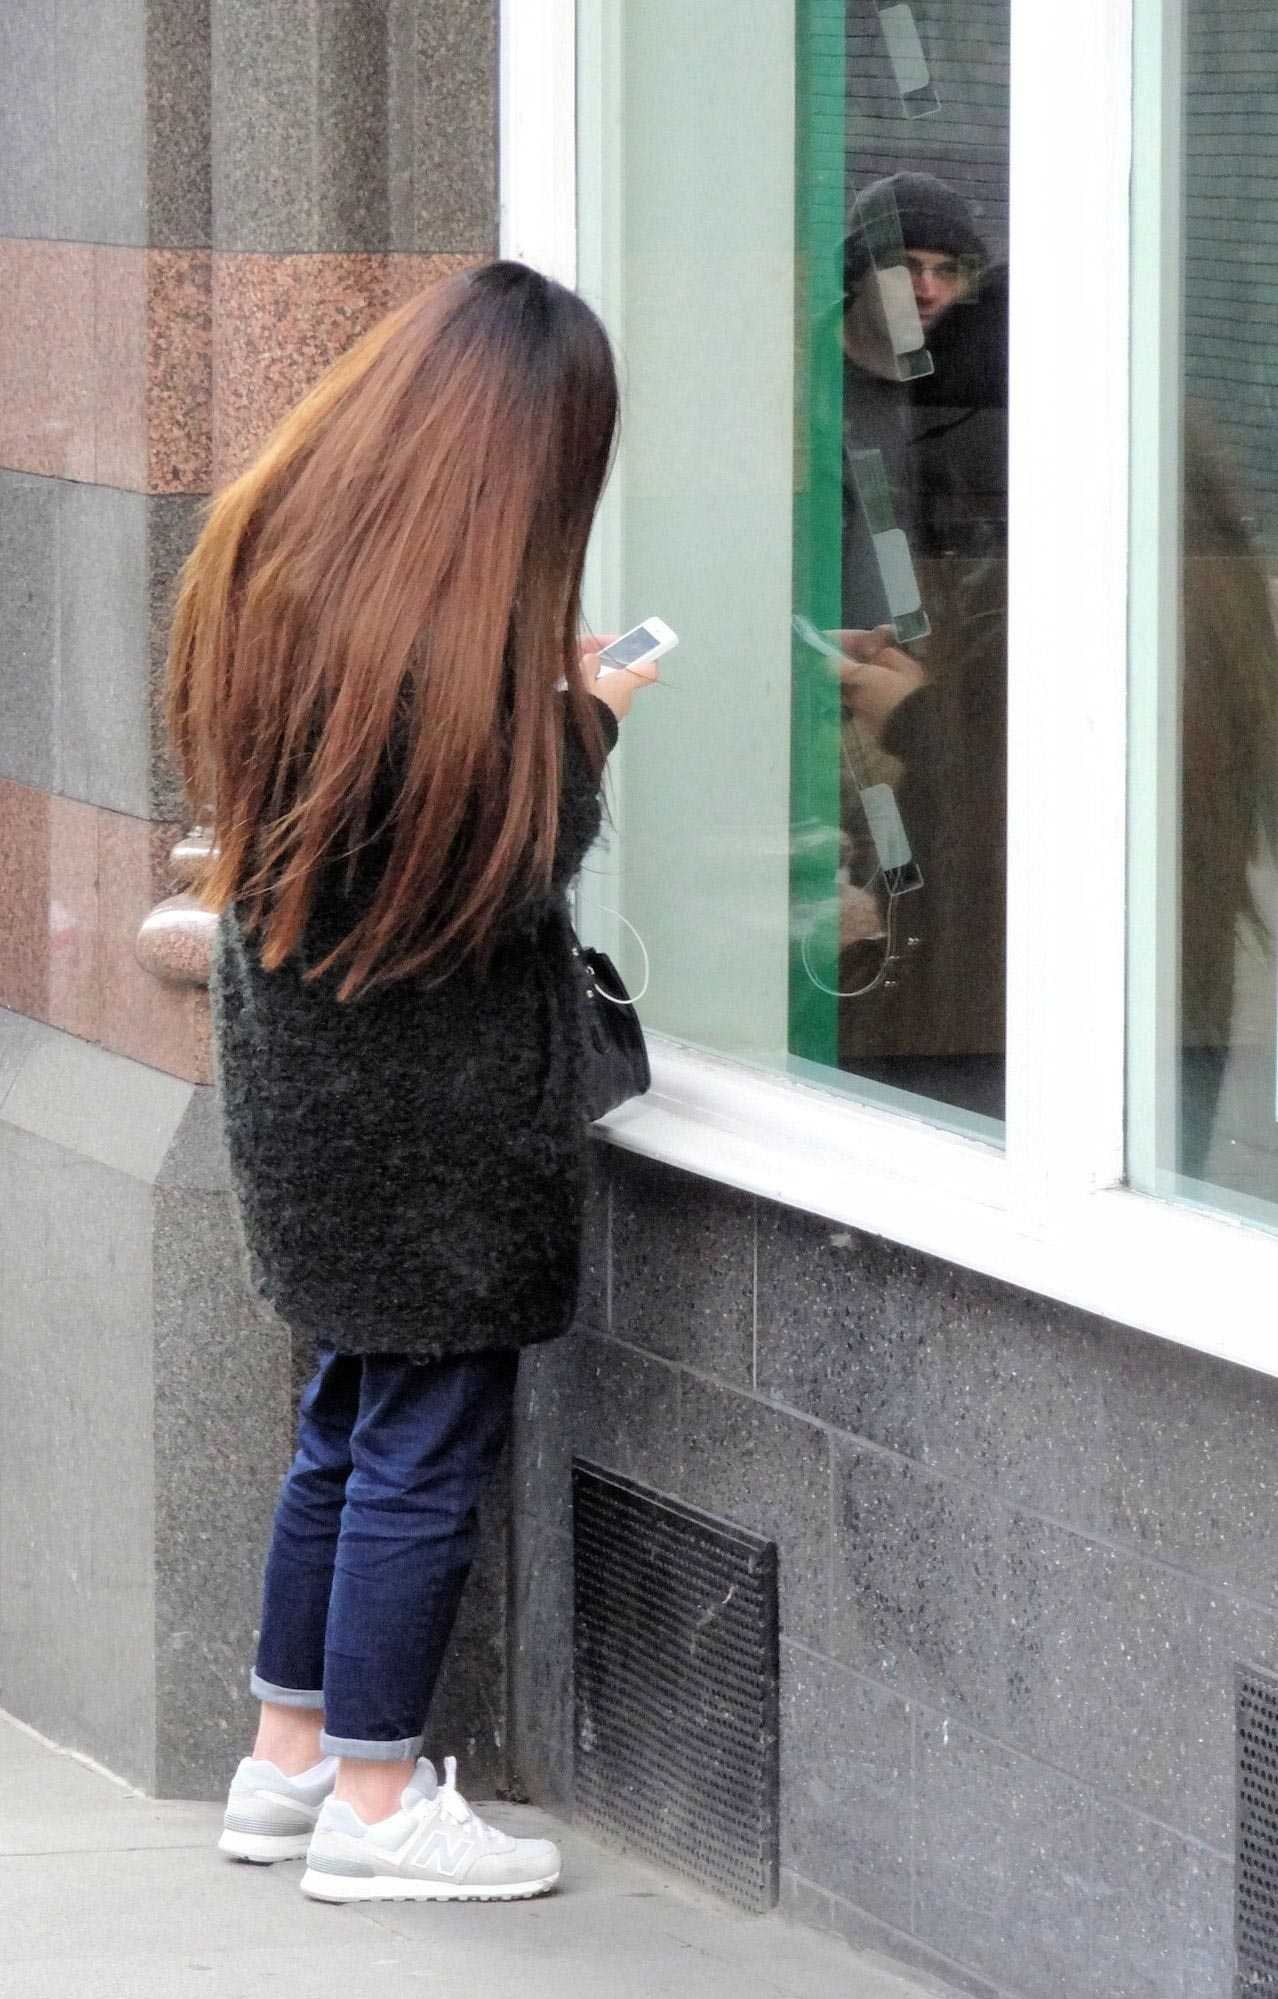 Furtive mobile phone use -> what doesn't she want the world to know?